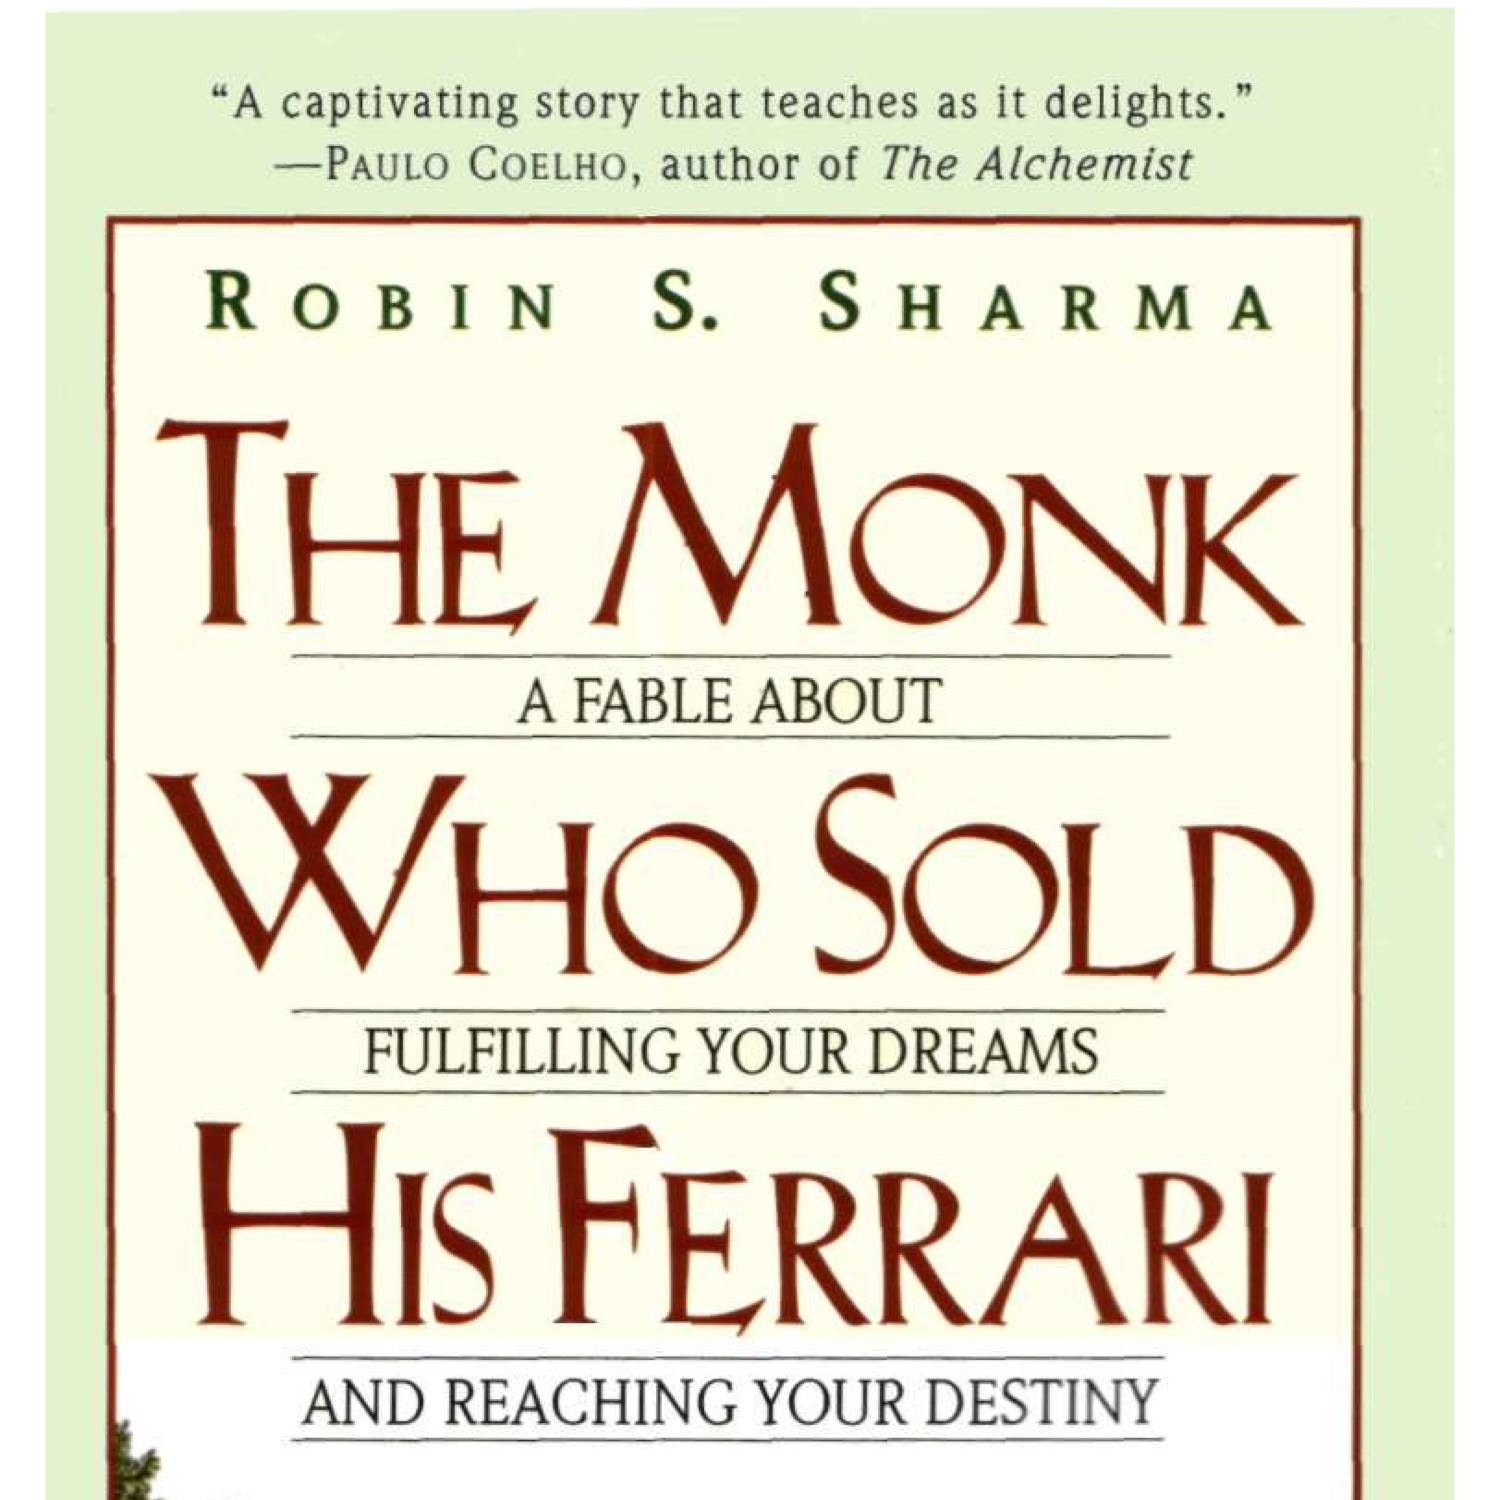 eBook_The Monk Who Sold His Ferrari_Robin S. Sharma.pdf - DocDroid